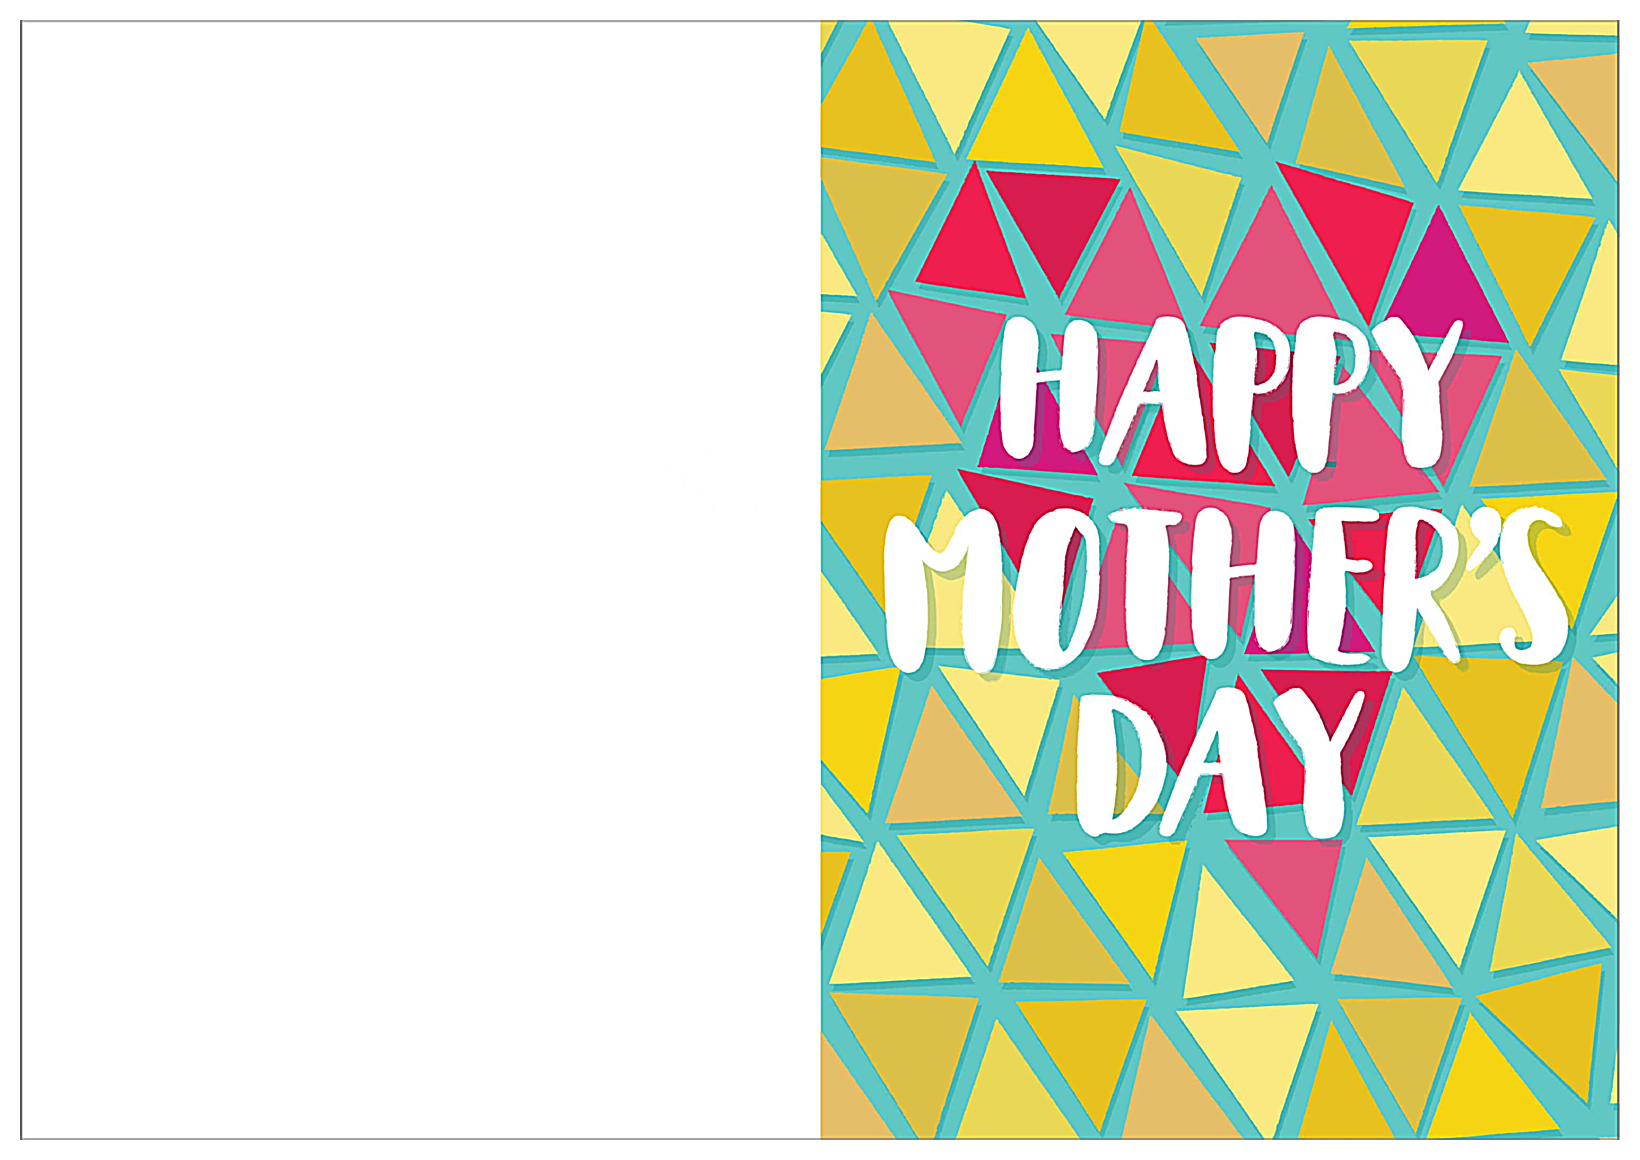 APPRECIATED front - Greeting Cards Maker